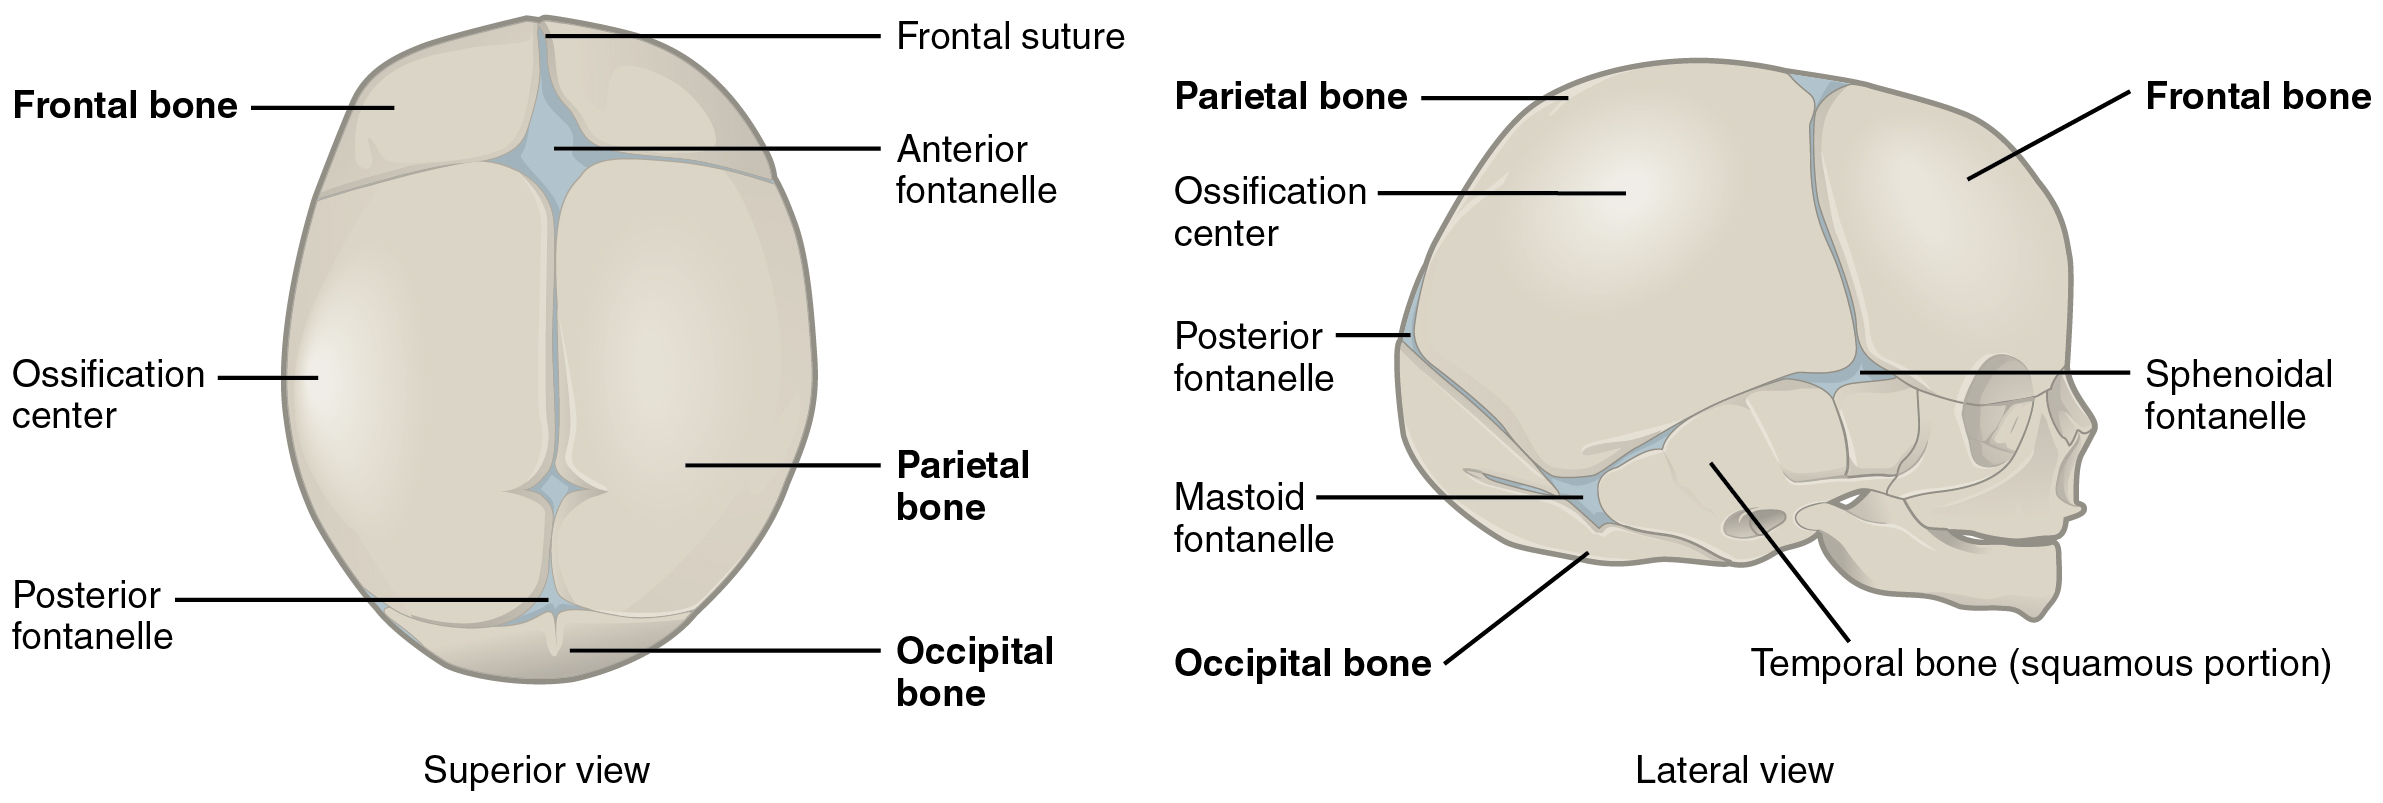 This diagram shows the image of a newborn human skull. The major parts of the skull are labeled. The left panel shows the superior view (from the top) and the right side shows the lateral view (from the side).